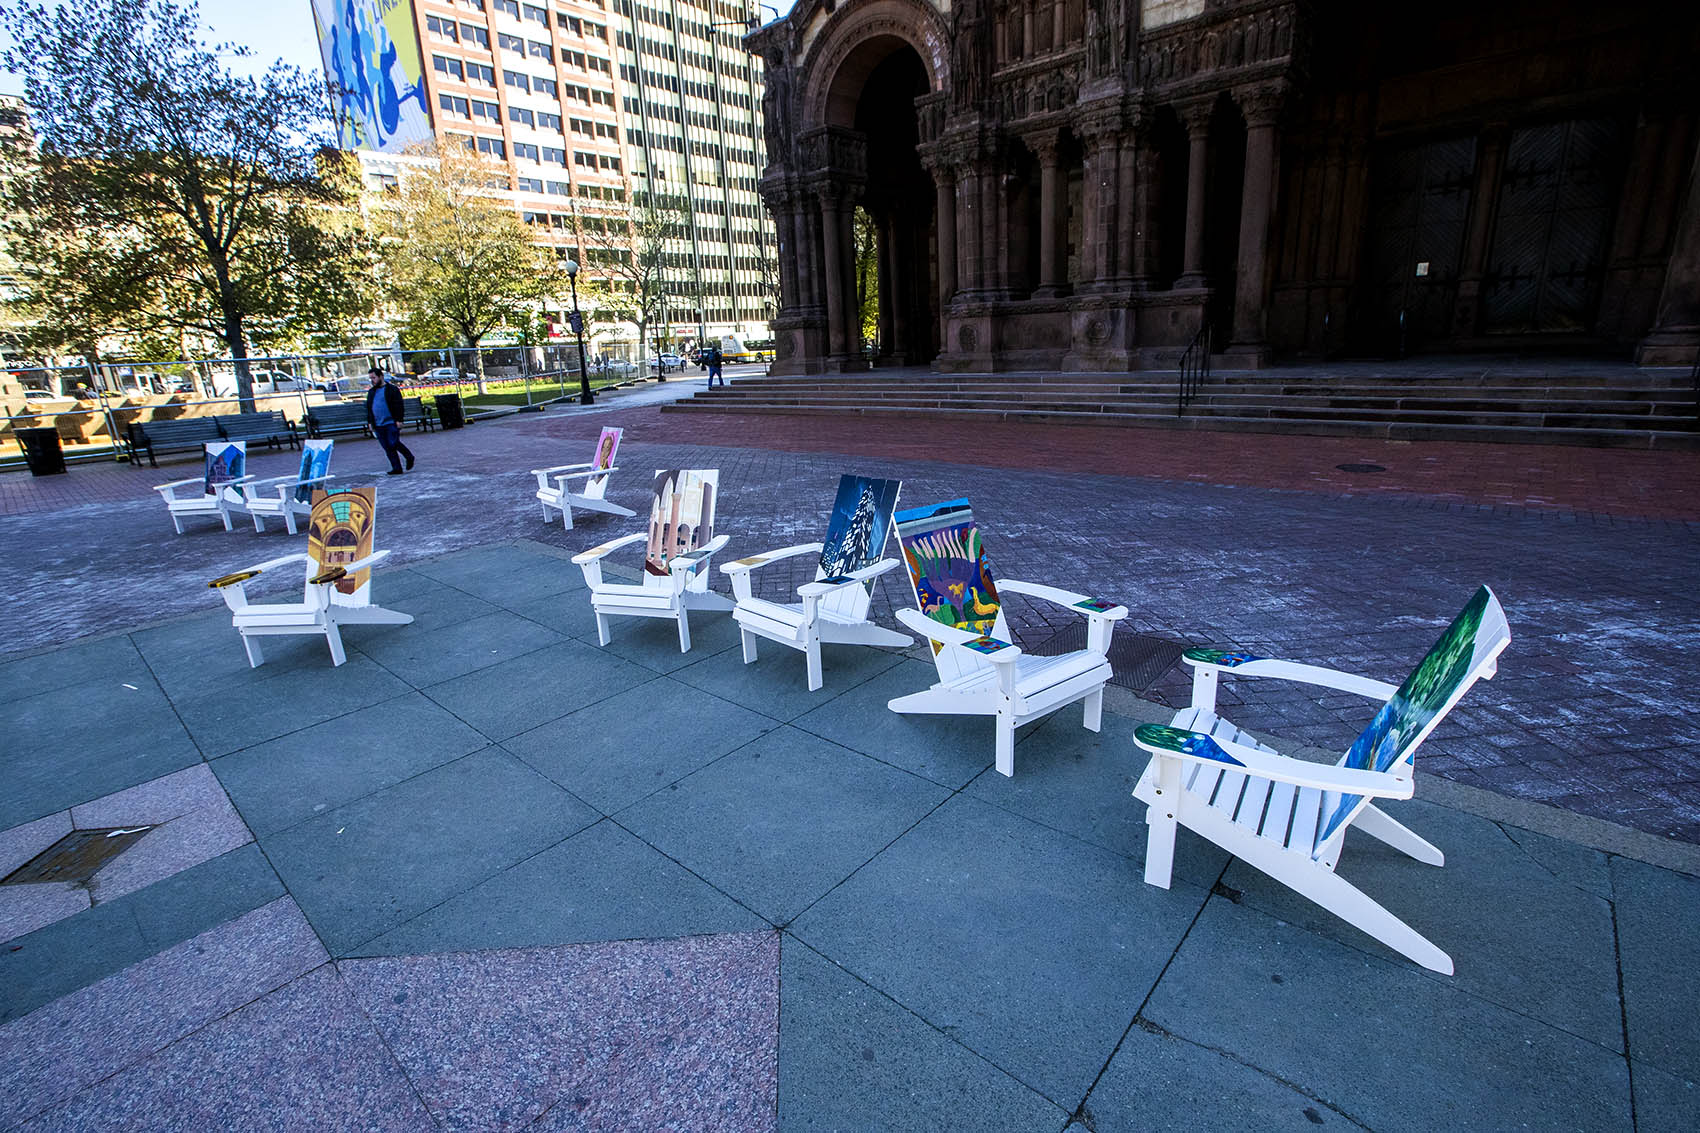 The Artists For Humanity Adirondack chairs on display at Copley Square (Jesse Costa/WBUR)